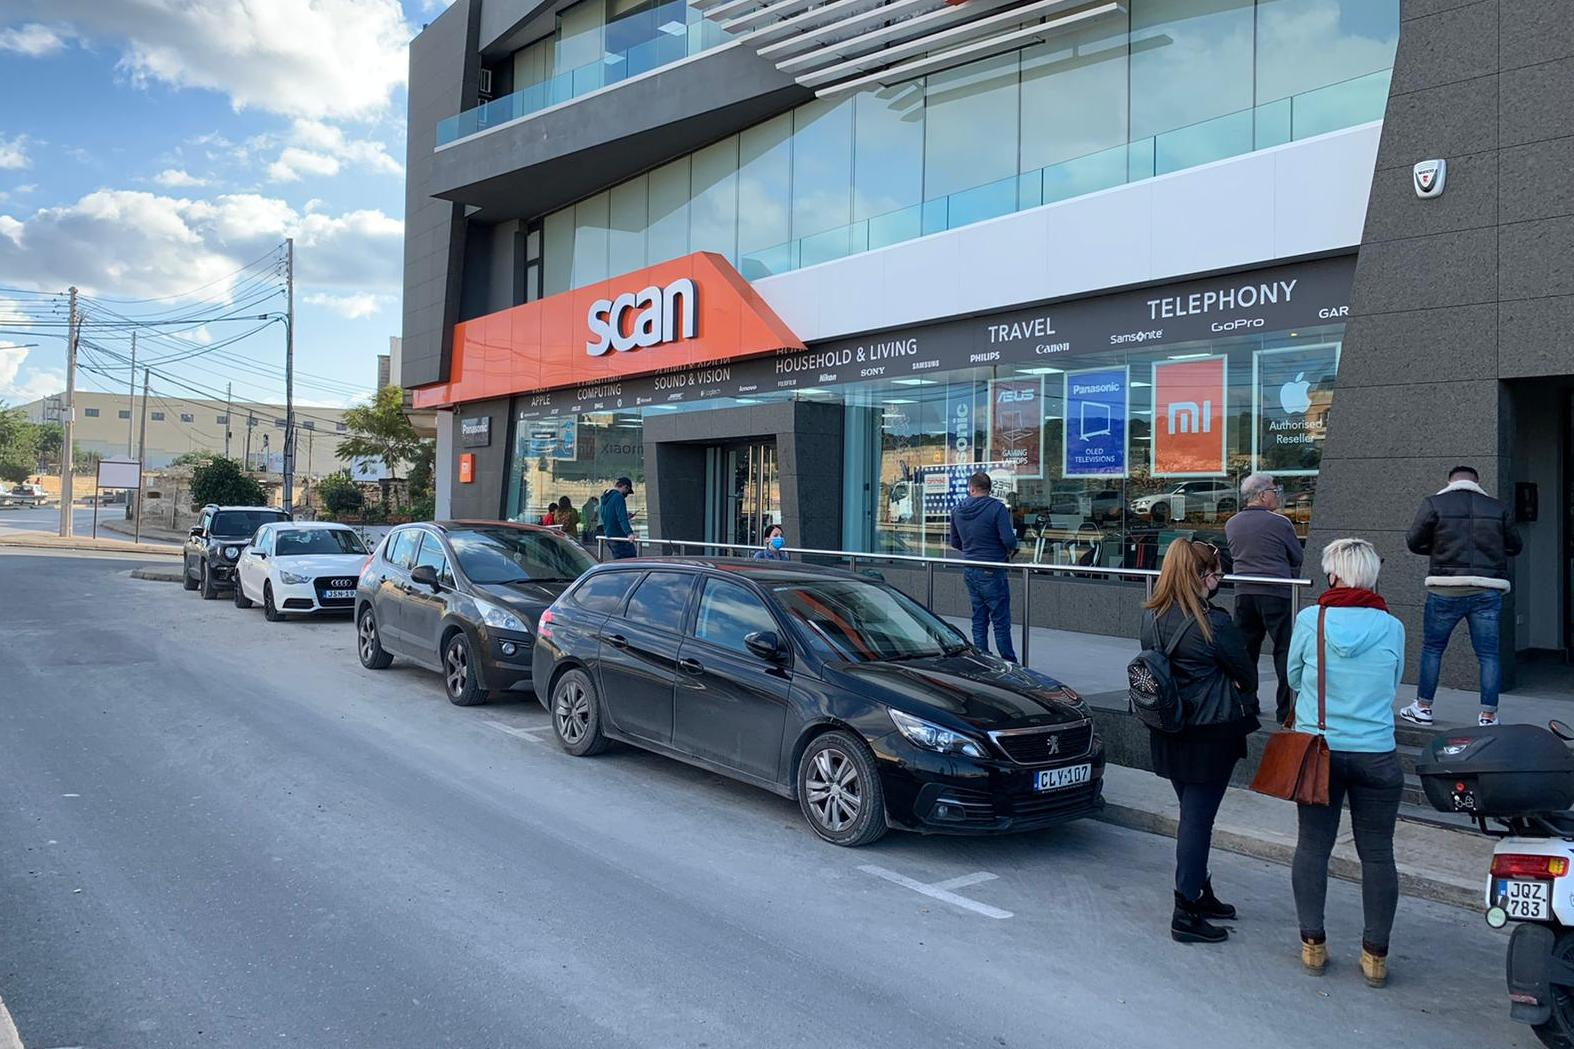 A handful of people queued outside Scan, where last year customers queued for two hours before the store opened. Photo: Jessica Arena